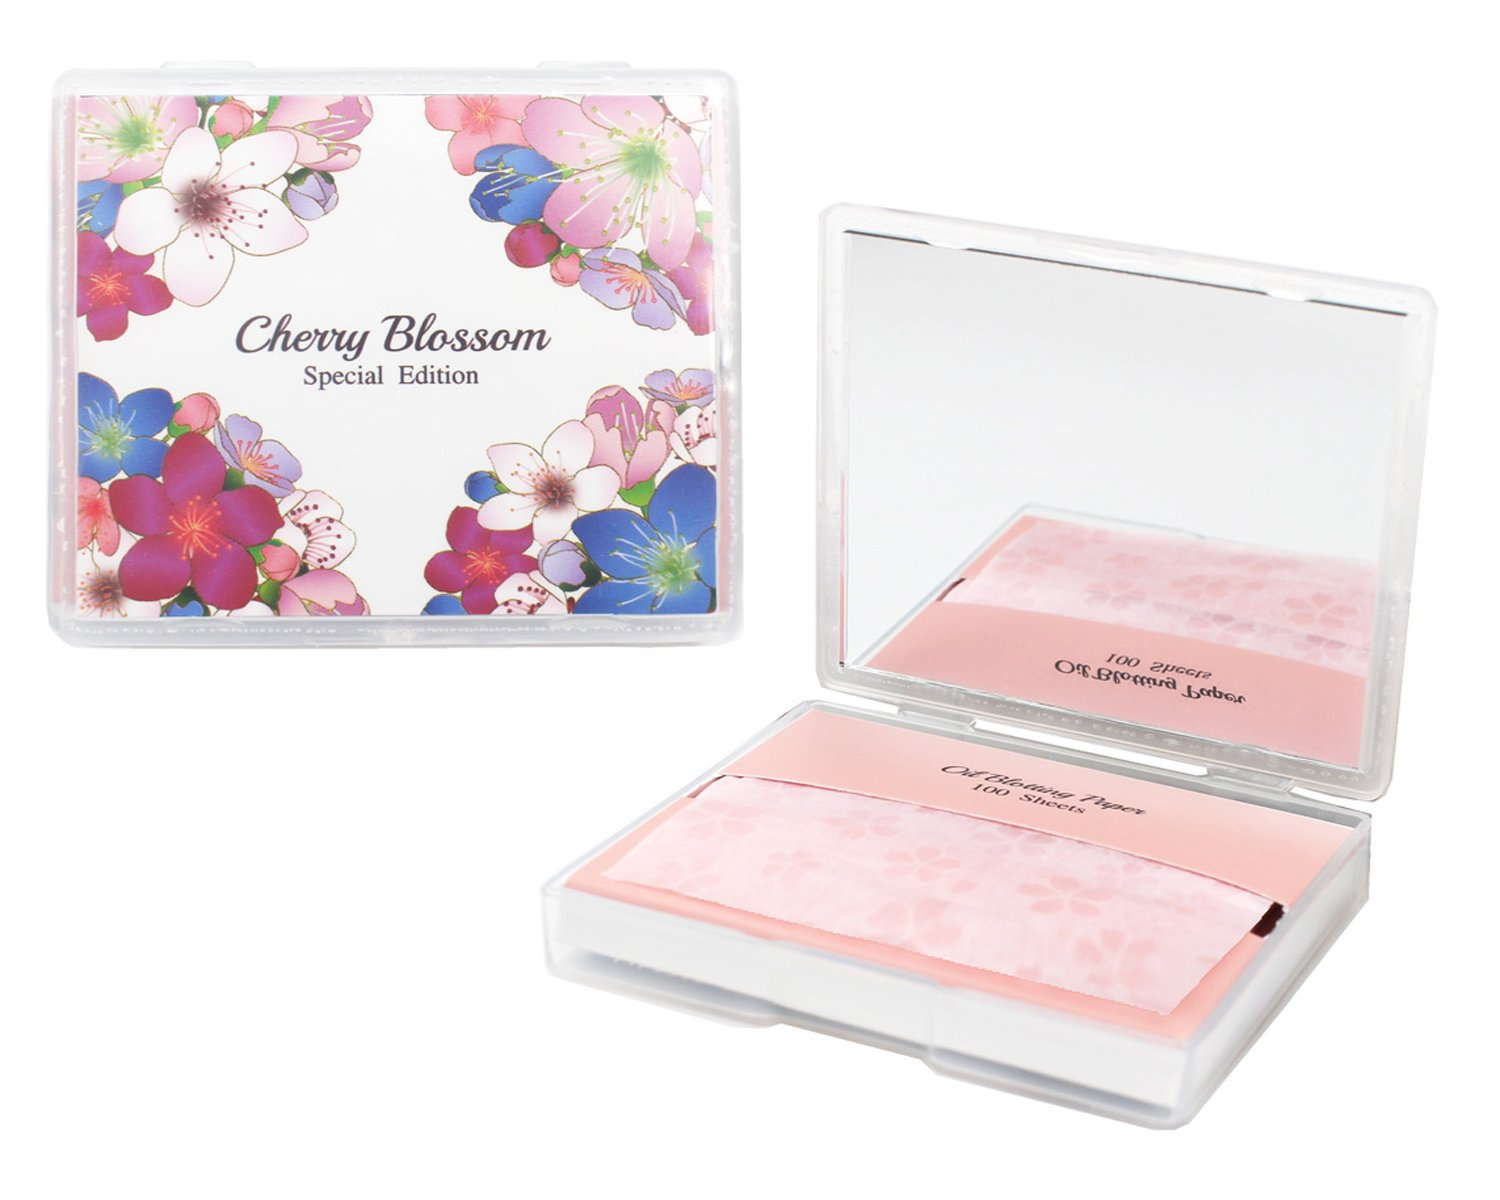 Cherry Blossom Face Oil Blotting Paper Sheets with Makeup Mirror - Oil Absorbing Sheets made in Japan (200 Count, Cherry Blossom)